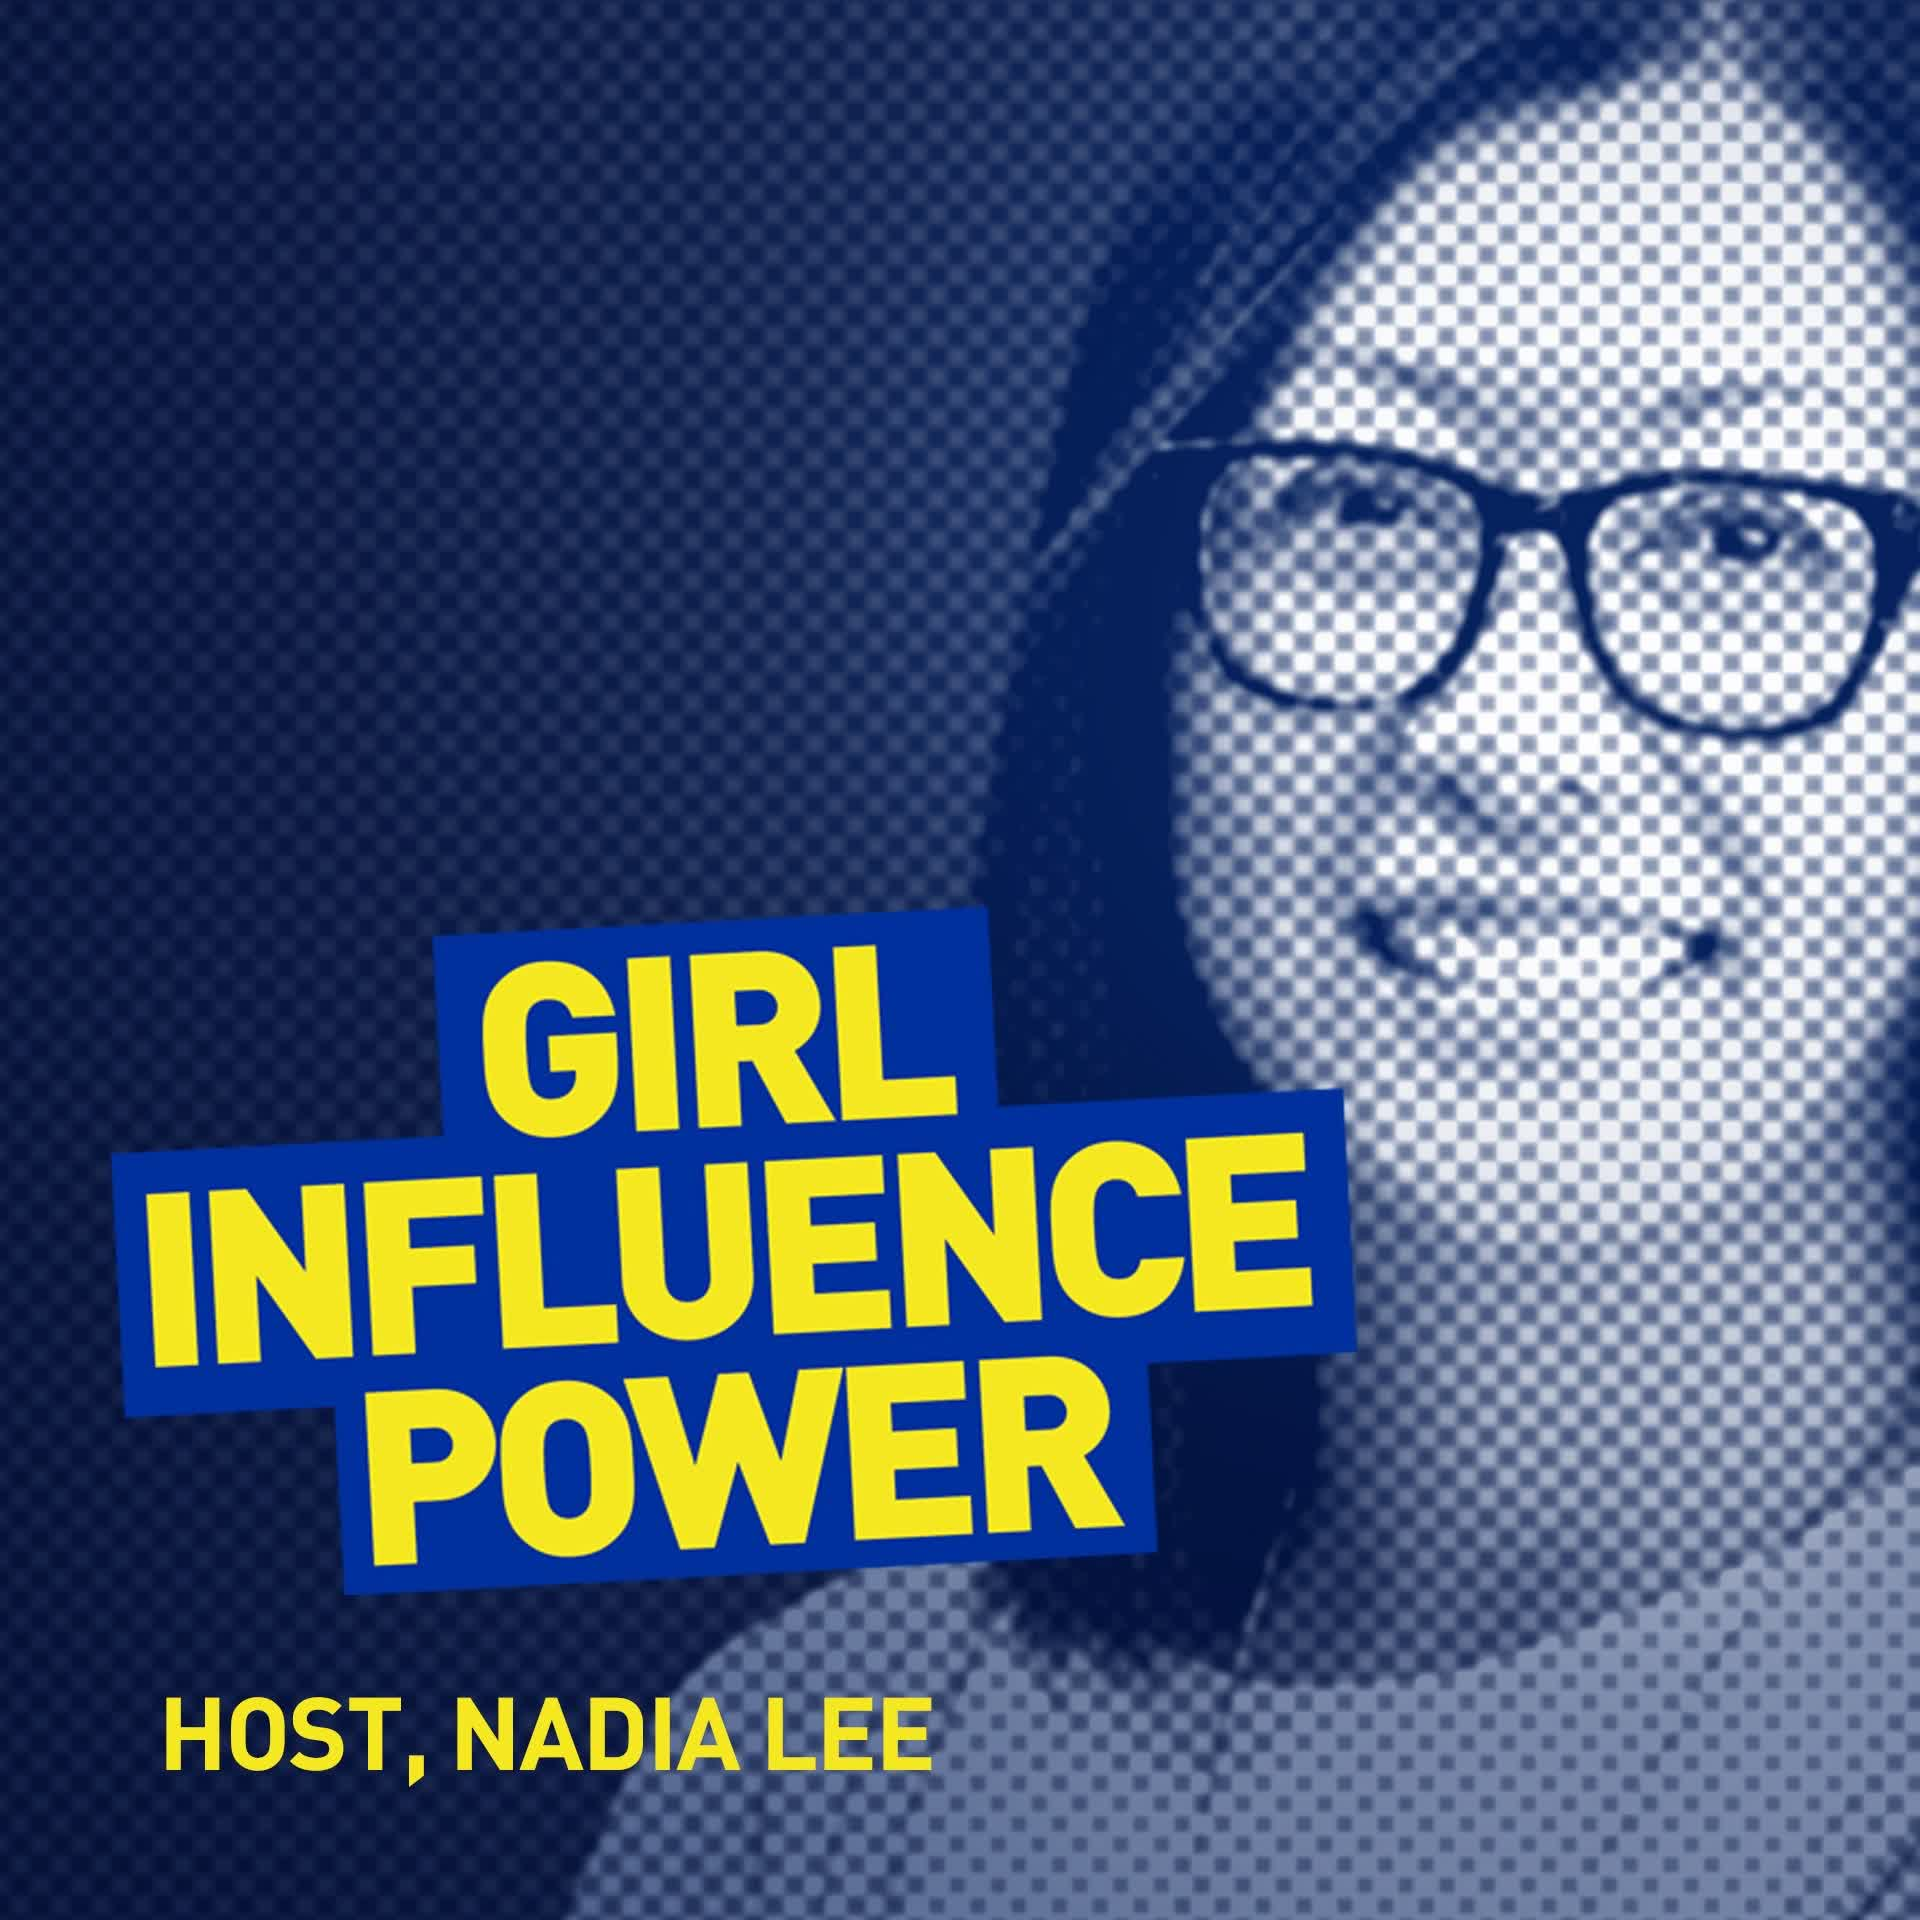 Girl Influence Power:Nadia Lee